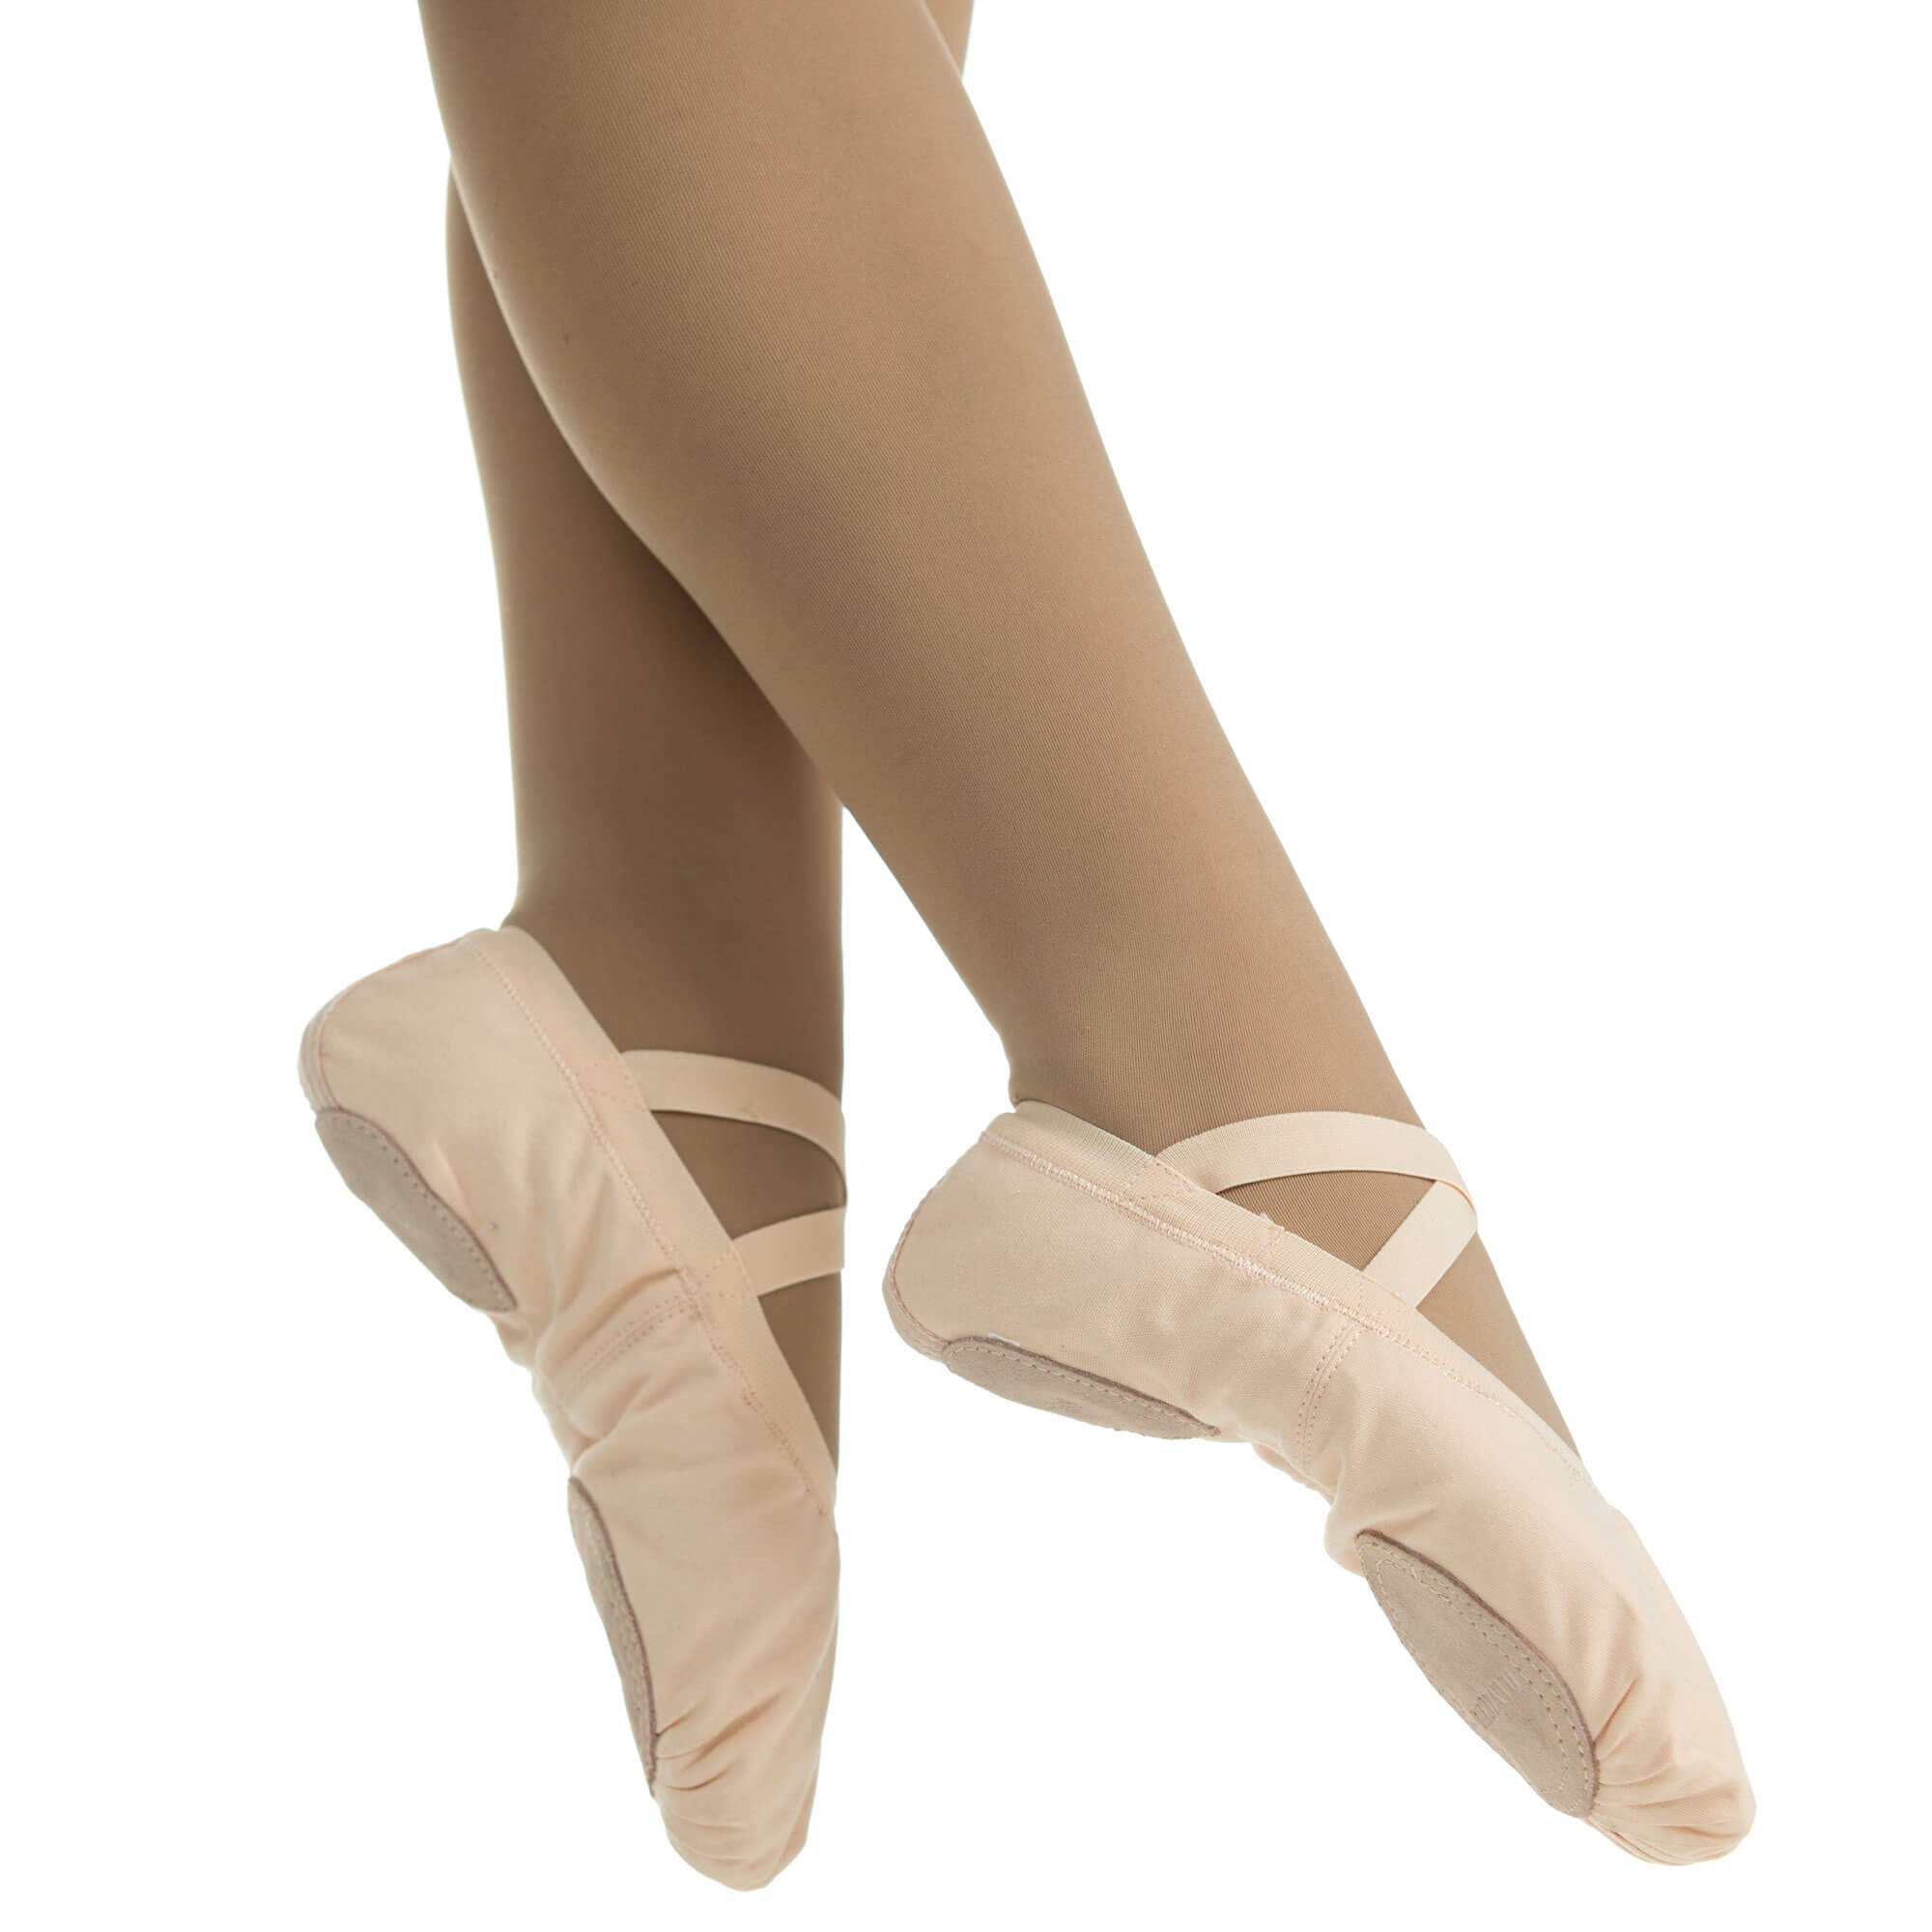 Danzcue Adult Canvas Pro Elastic Split Sole Ballet Sliper - Click Image to Close